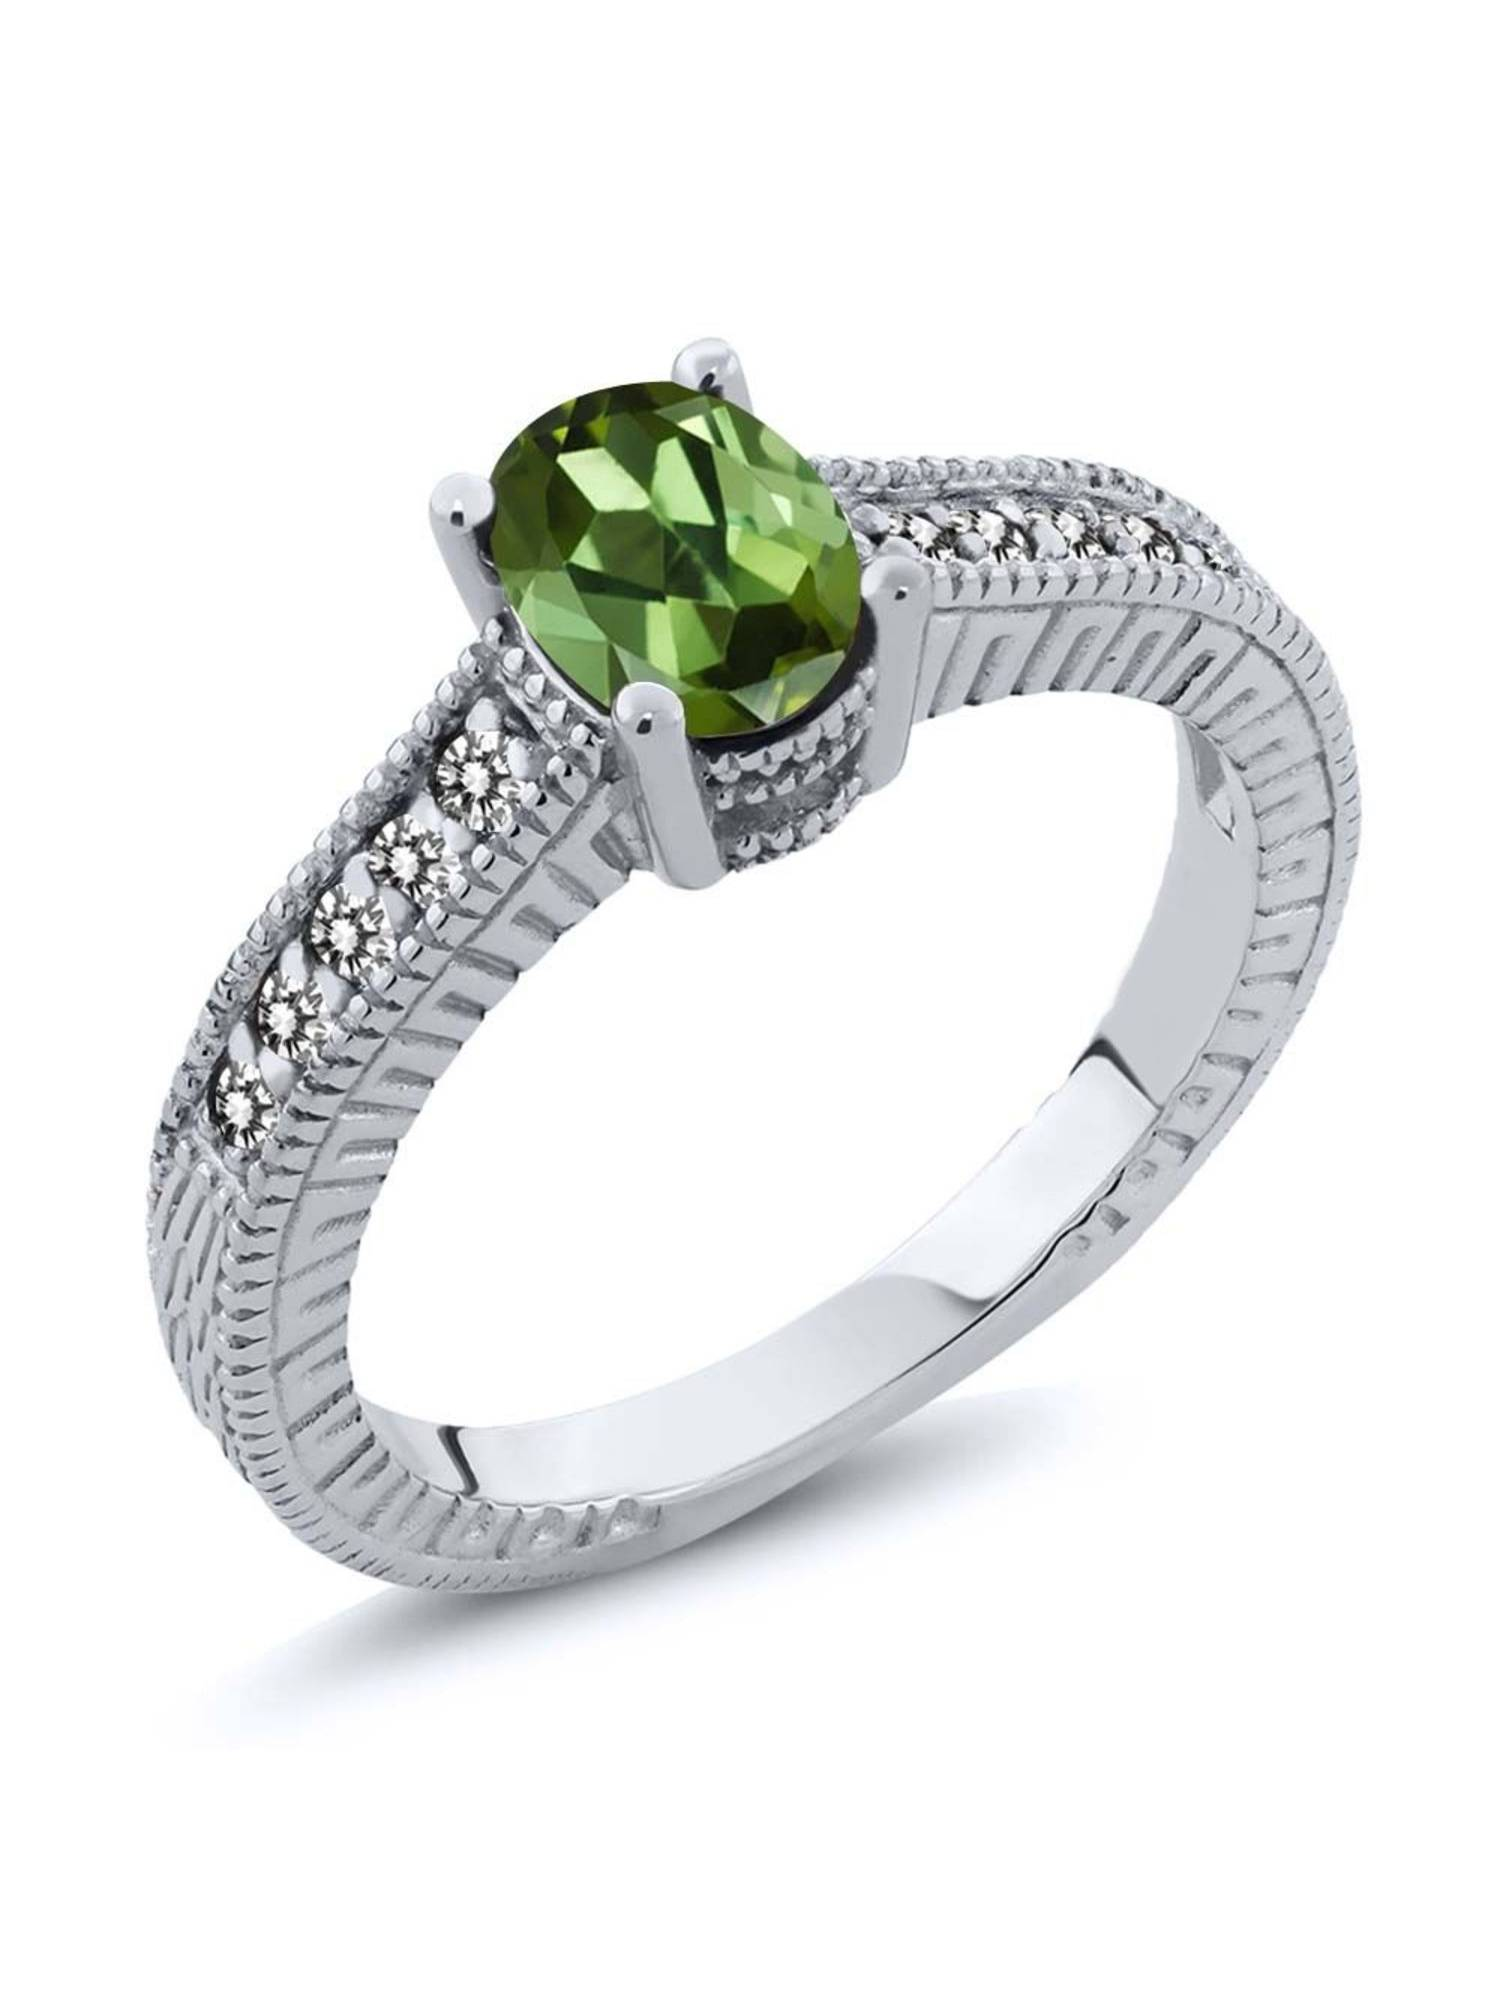 1.18 Ct Oval Green Tourmaline White Diamond 925 Sterling Silver Engagement Ring by